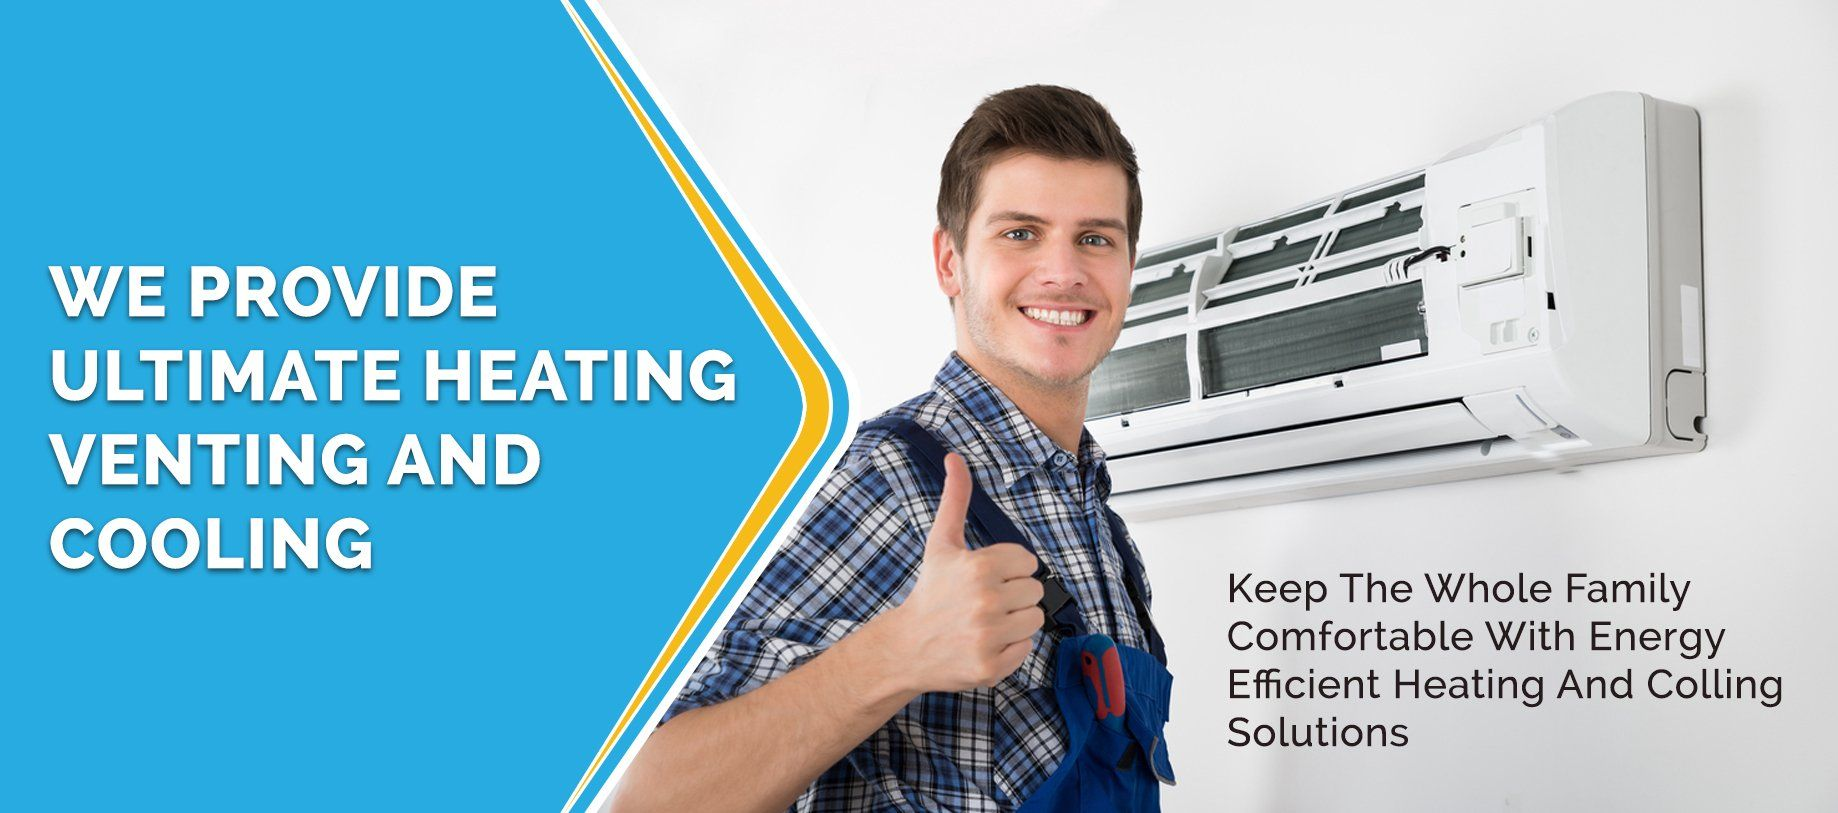 ac repair dubai is the perfect solution for your ac maintenance, ac